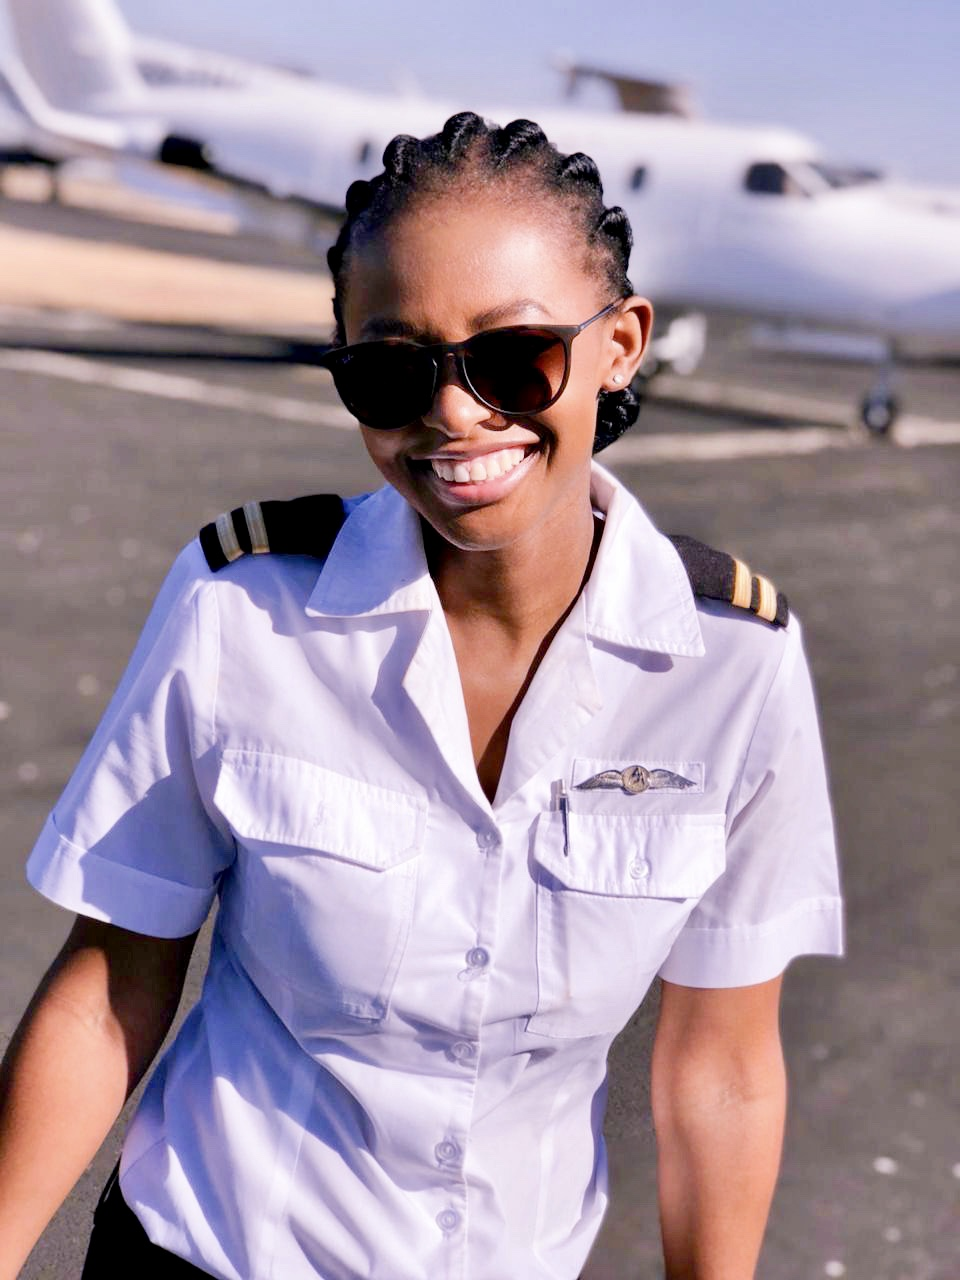 black female commercial pilot